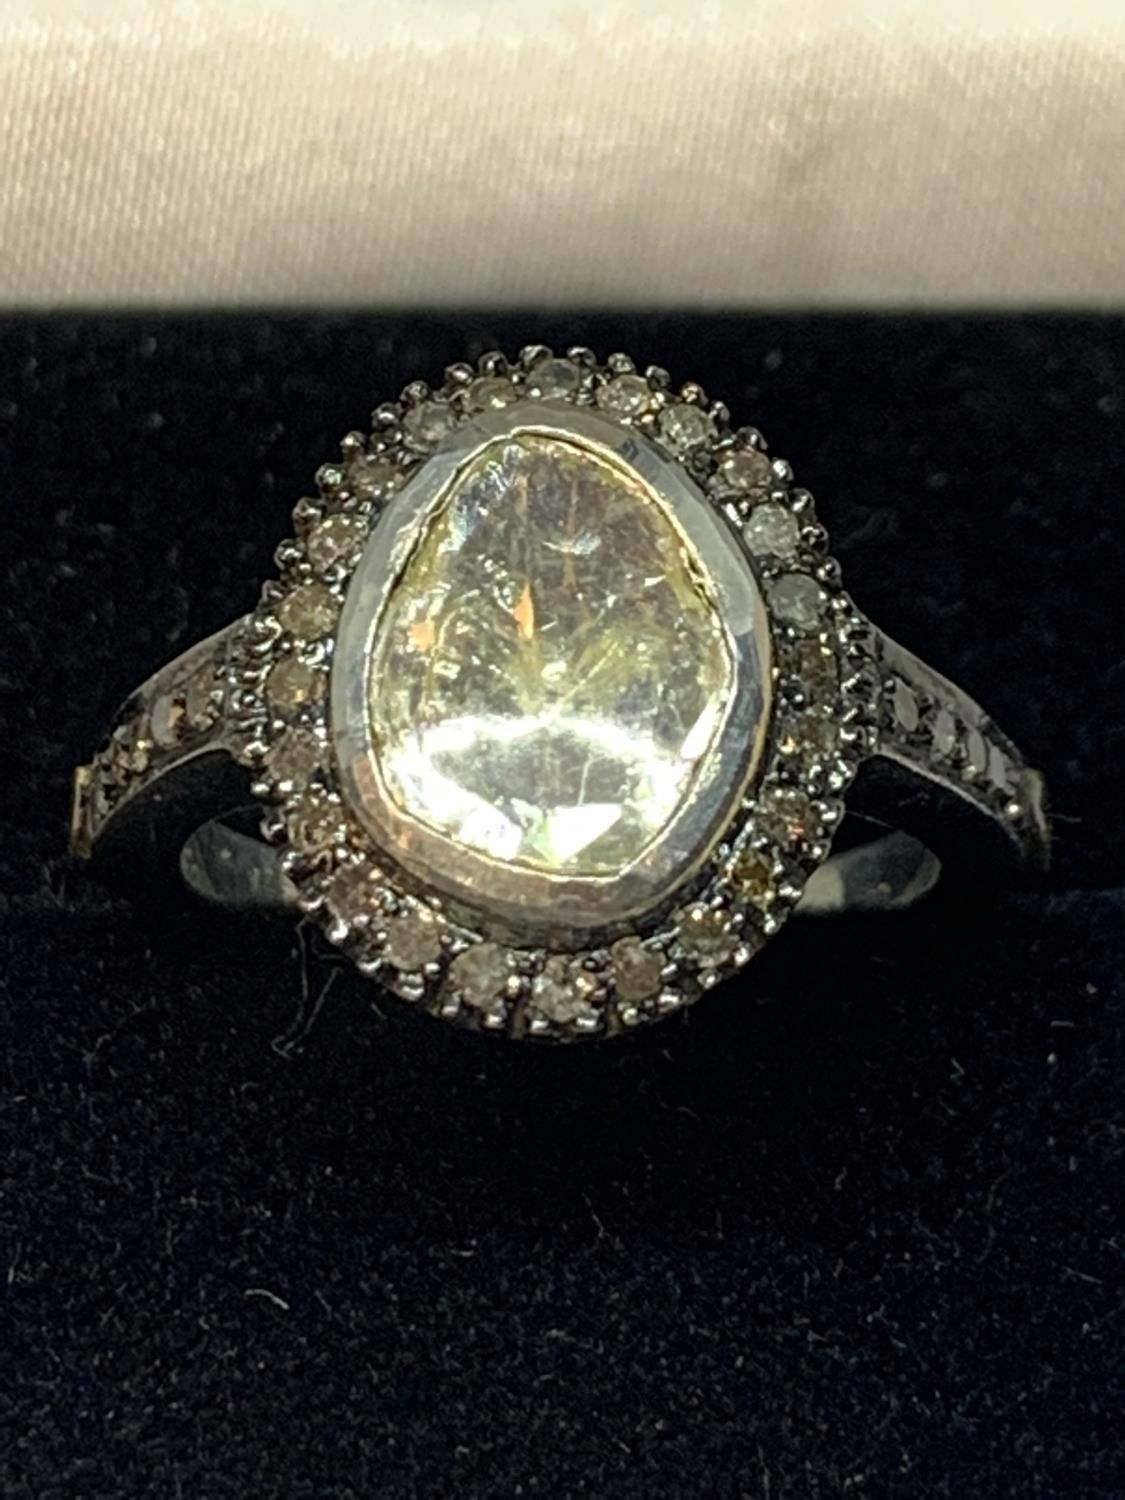 A CONTINENTAL WHITE AND YELLOW METAL RING WITH CENTRE DIAMOND AND SMALLER SURROUNDING DIAMONDS WHICH